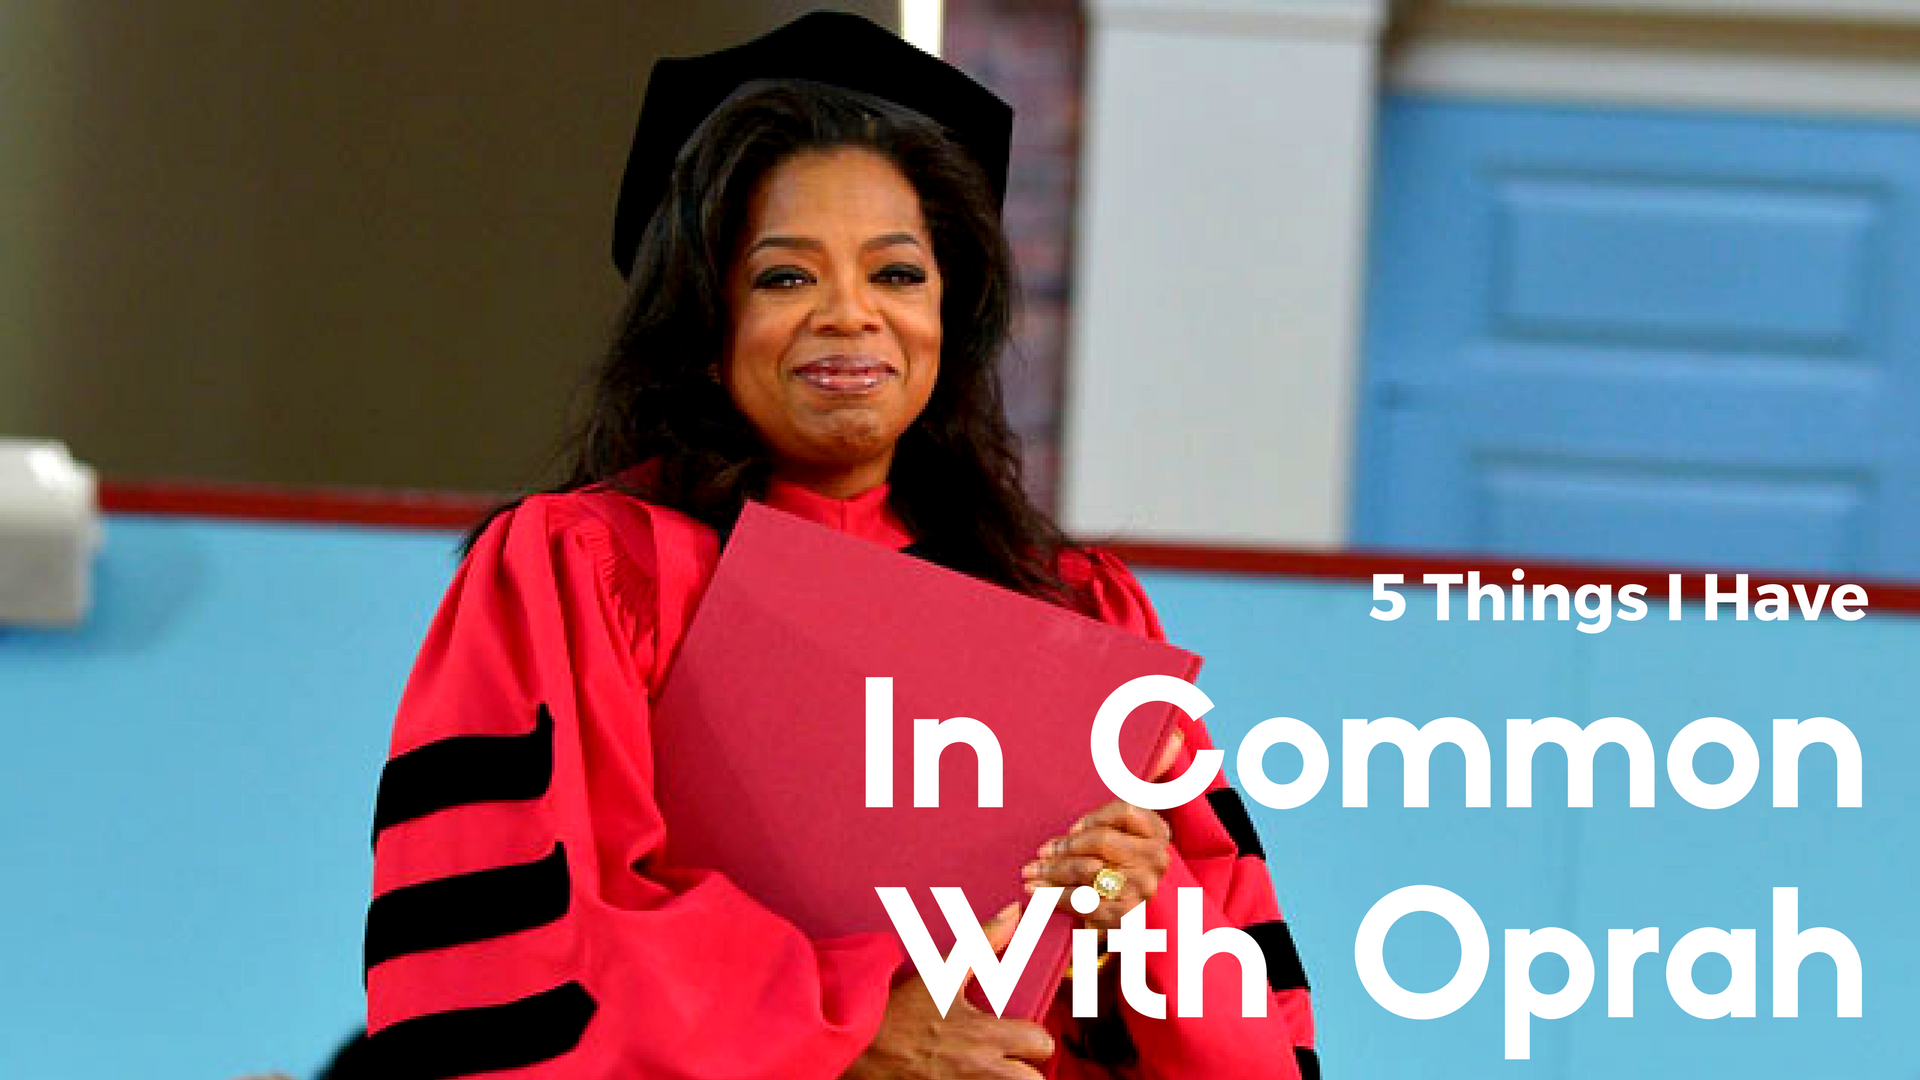 5 Things I Have In Common With Oprah